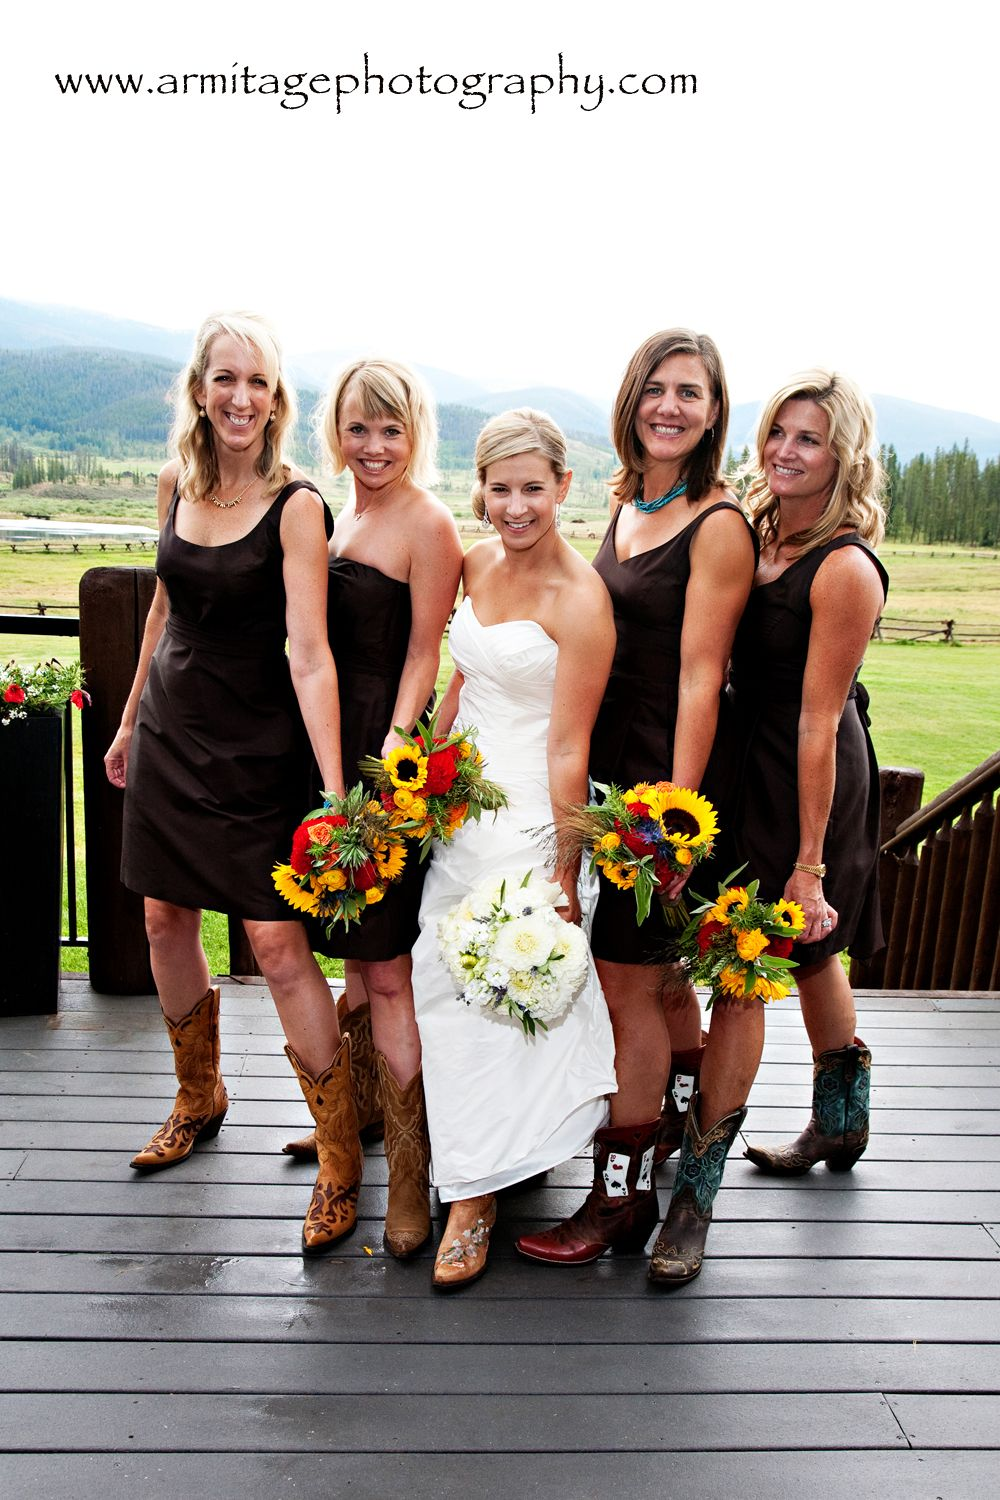 Cowboy boots for the bridesmaids and bride.